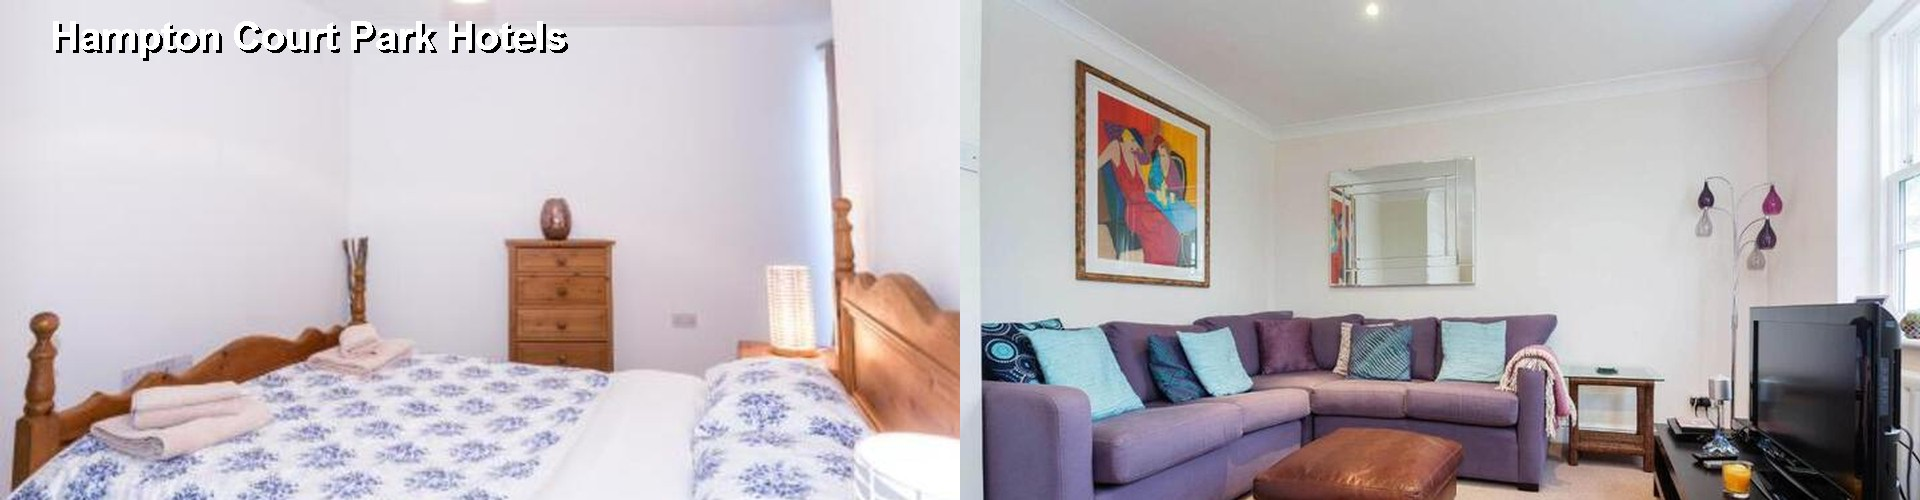 5 Best Hotels near Hampton Court Park